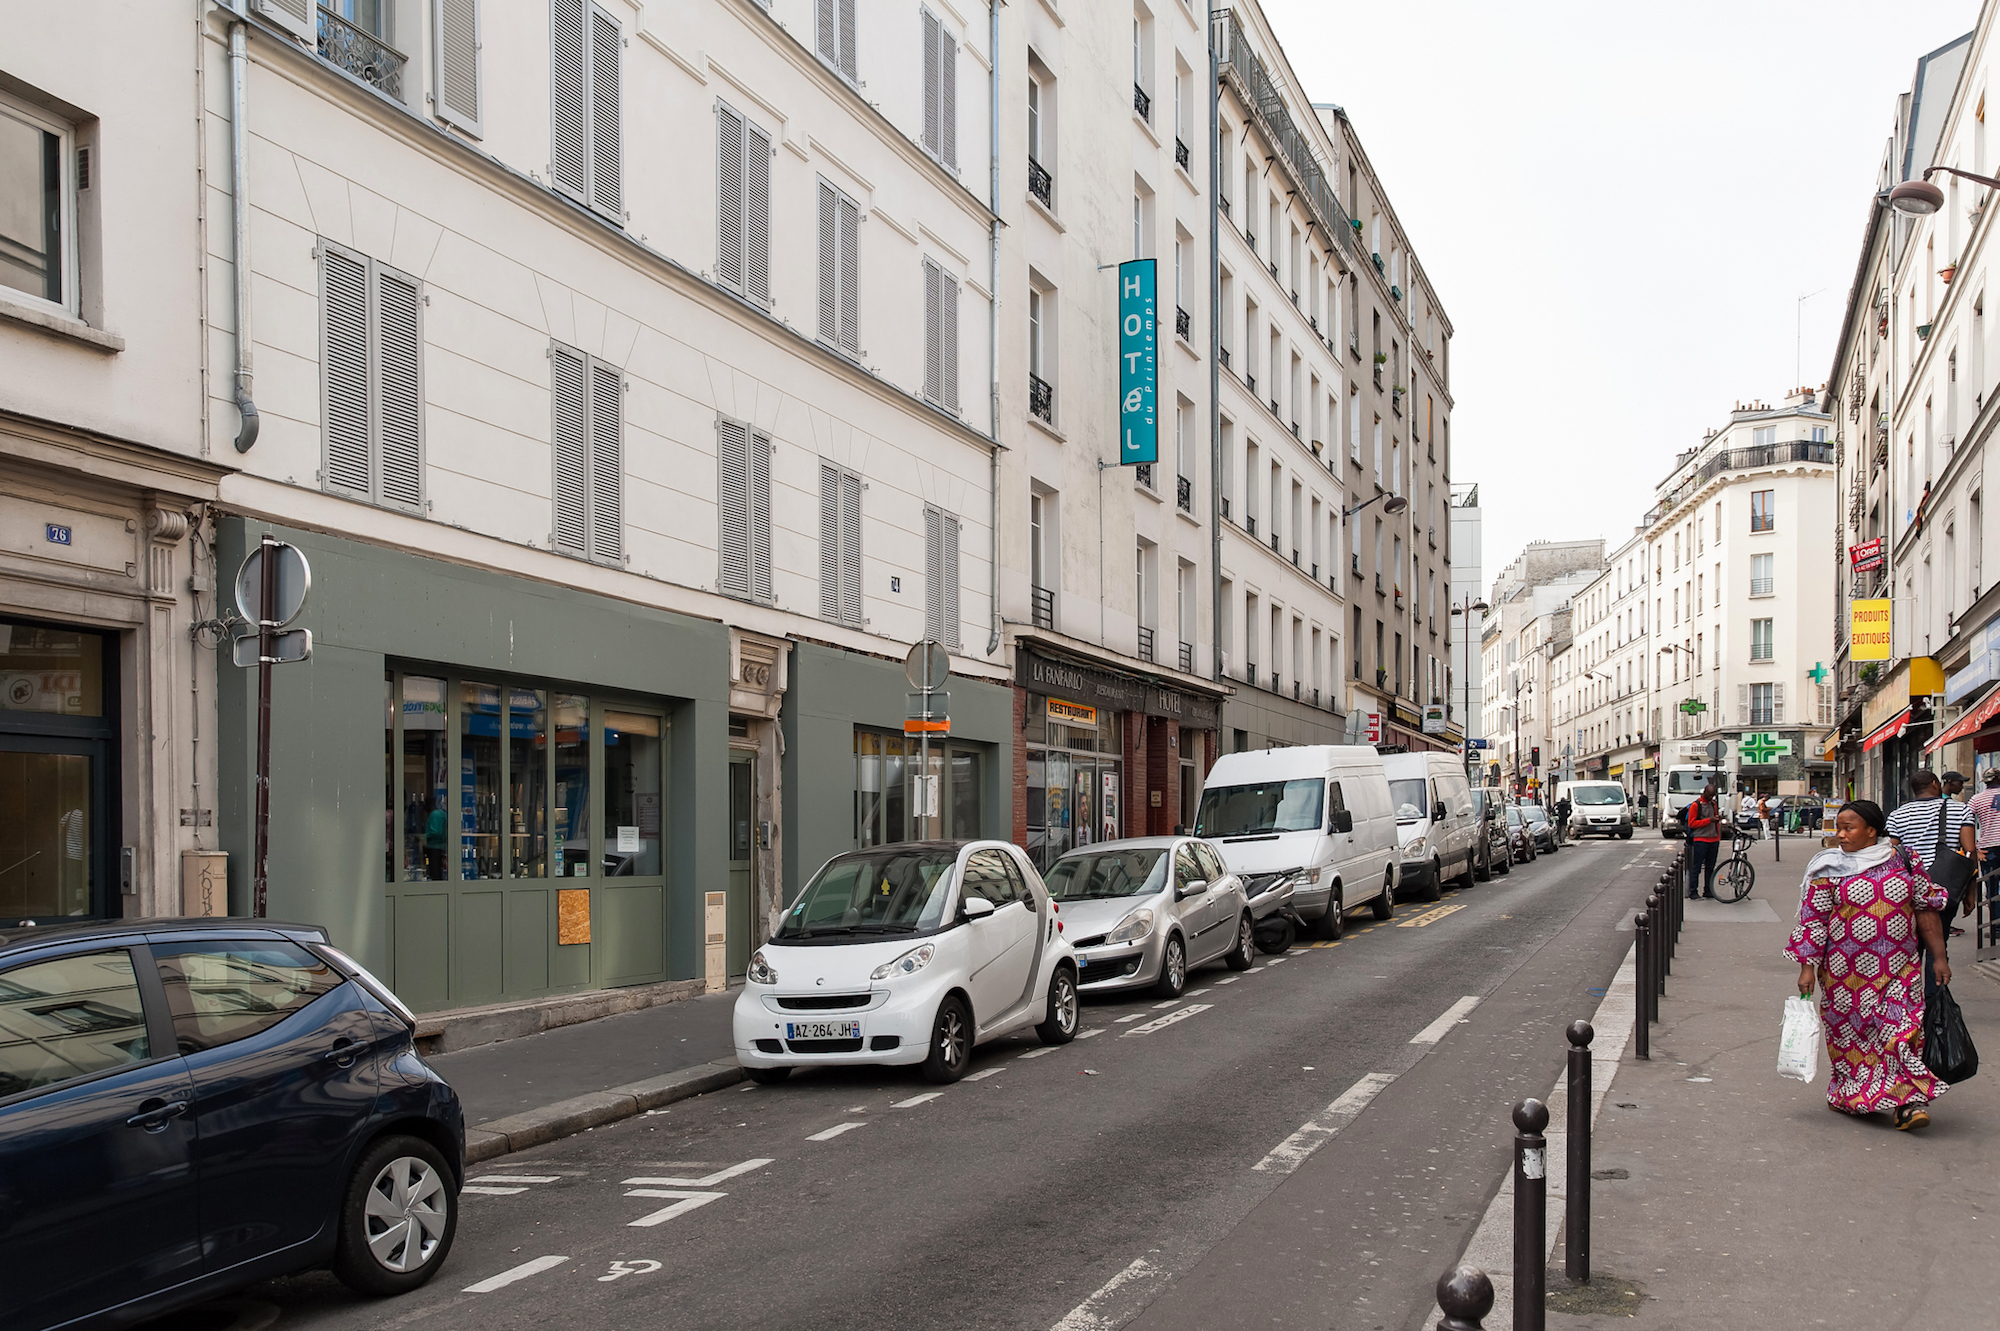 The street where you'll find Paris' first cheese dairy La Laiterie de Paris.